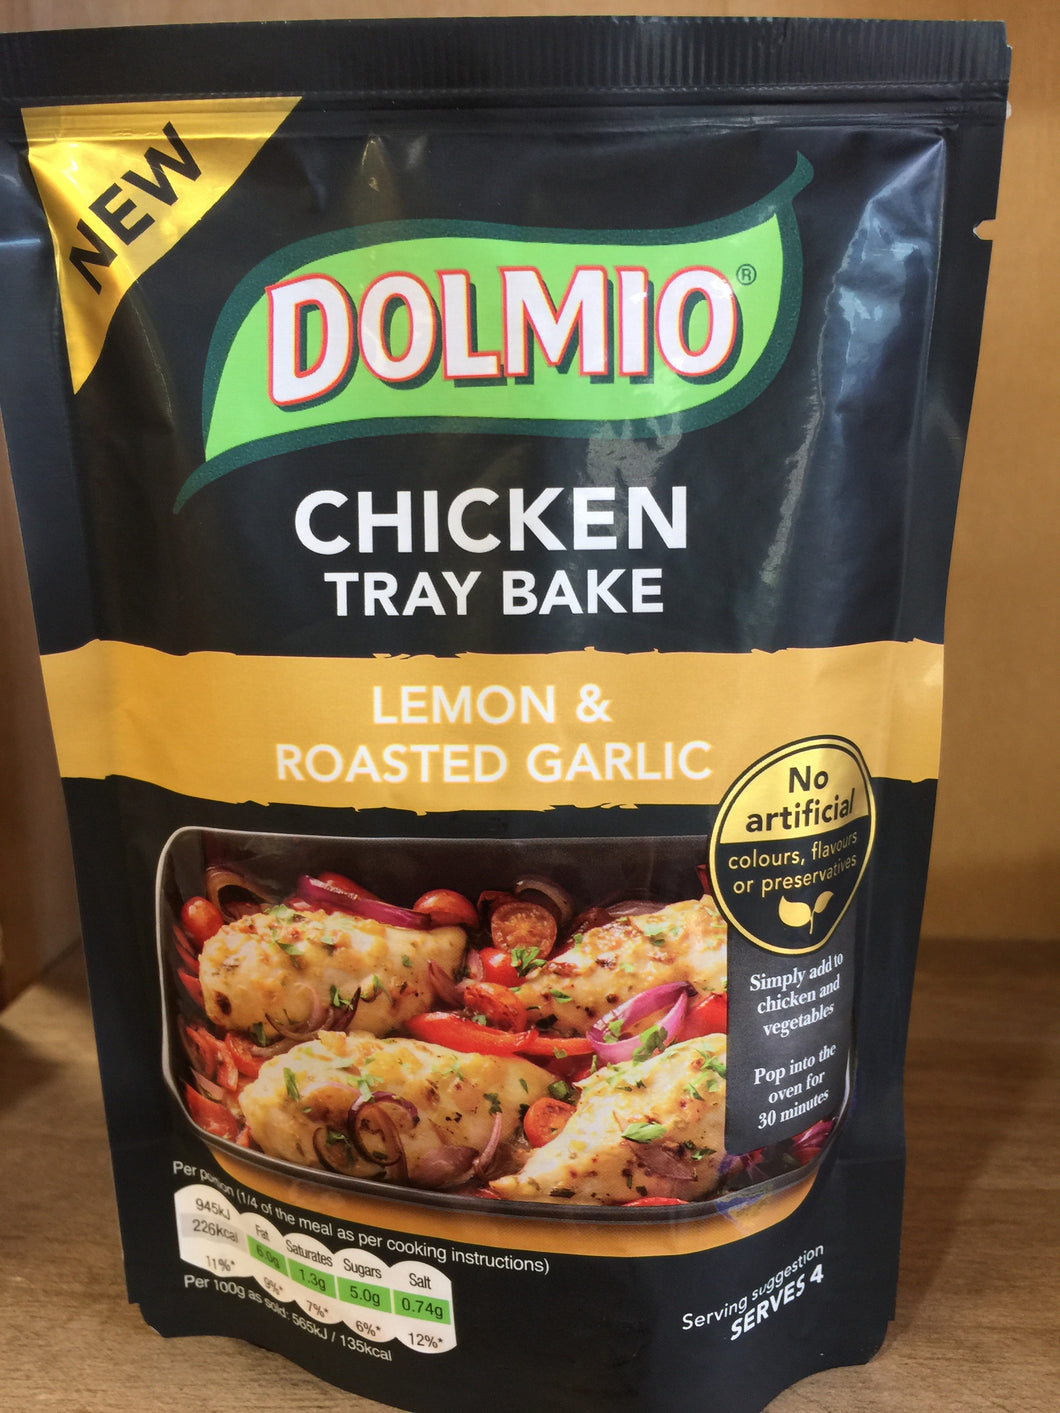 Dolmio Chicken Tray Bake Lemon & Roasted Garlic 150g